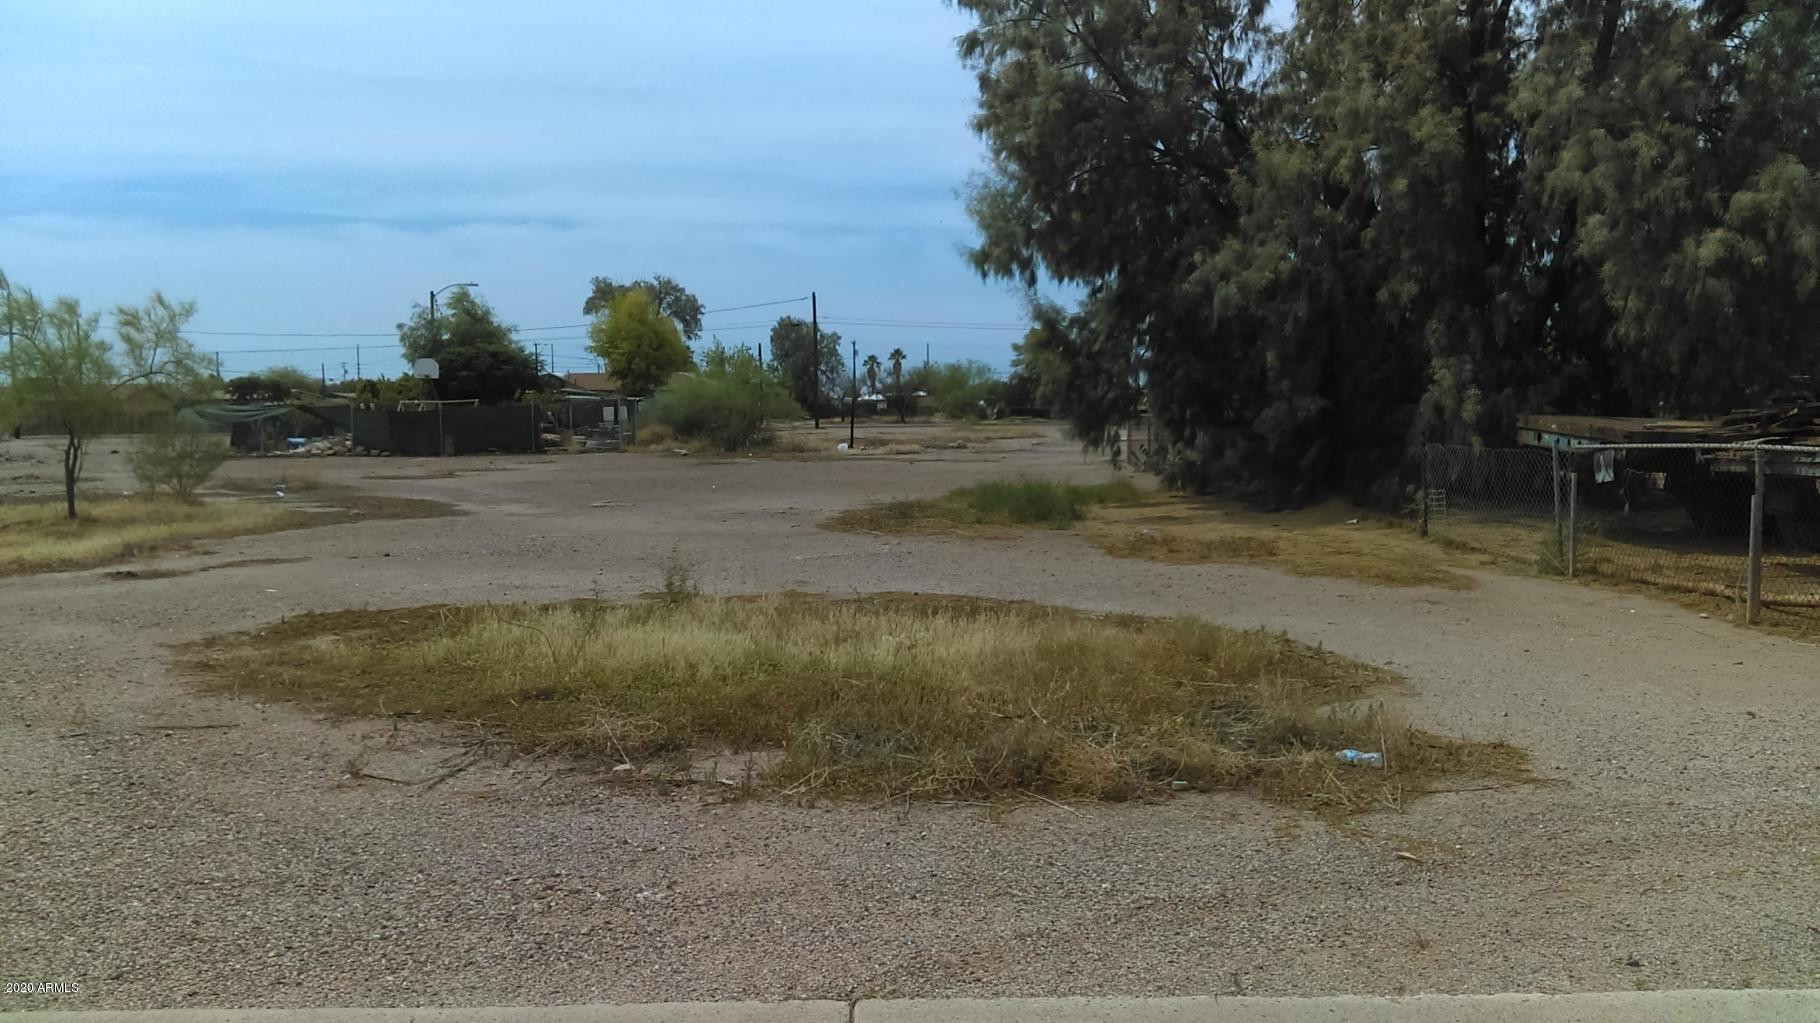 217 W 3RD Place # 7, Eloy, Arizona 85131, ,Land,For Sale,217 W 3RD Place # 7,5807172